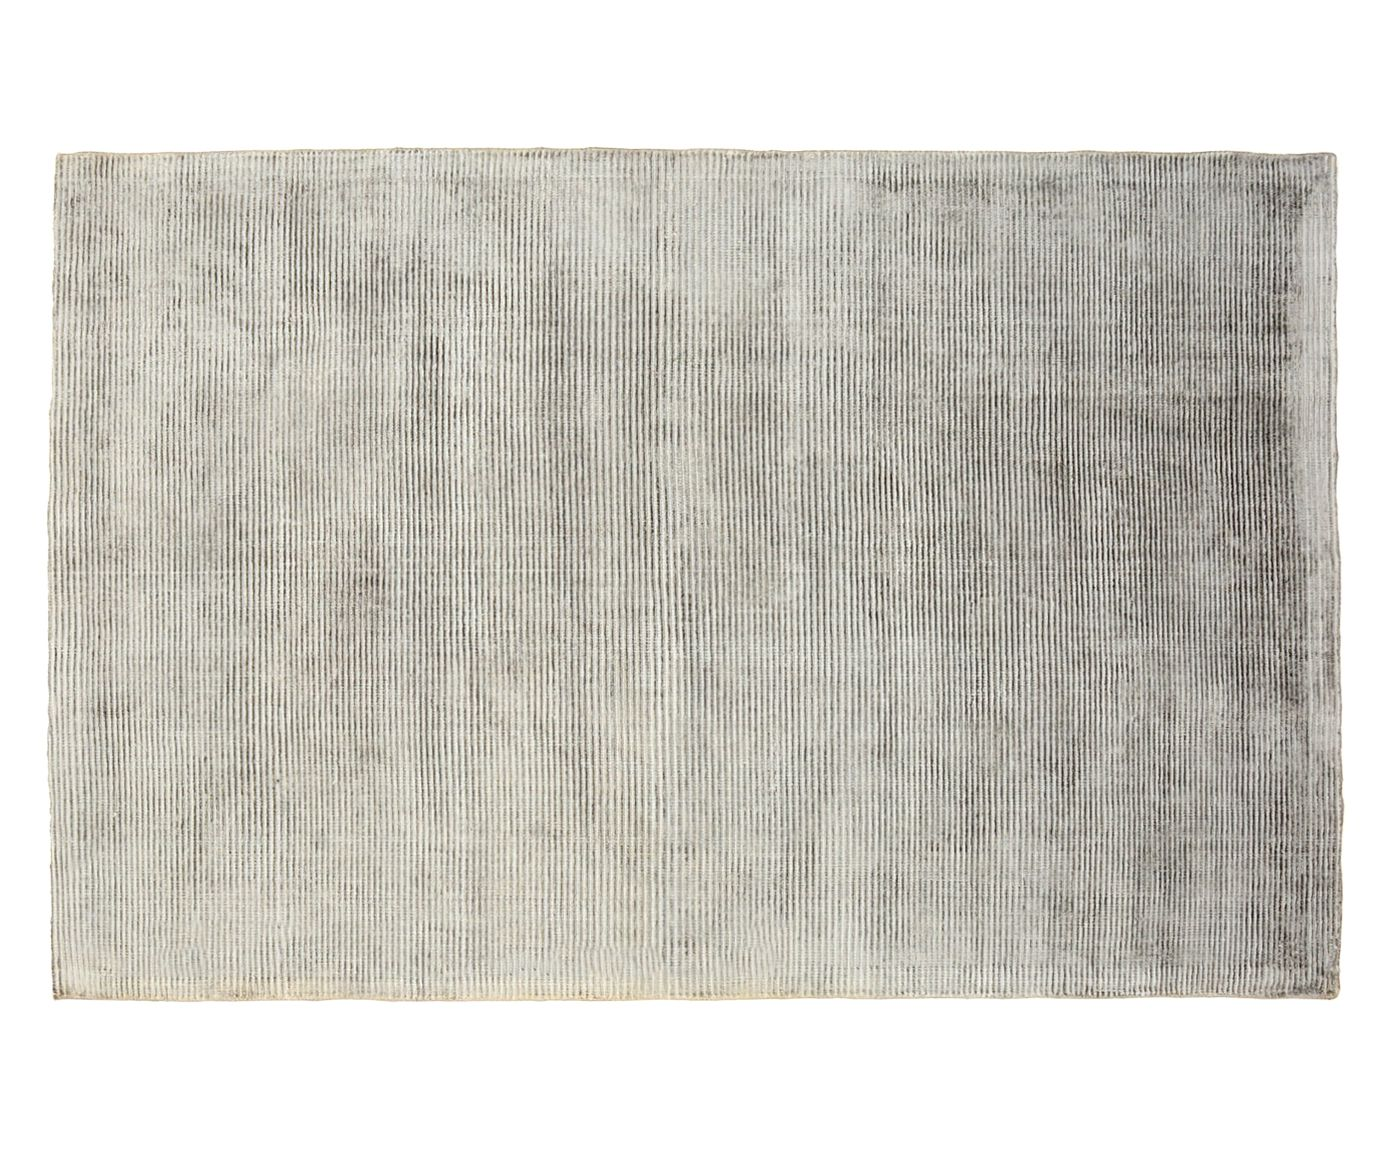 Tapete Artesanal Indiano Lokesk - 152X242cm | Westwing.com.br